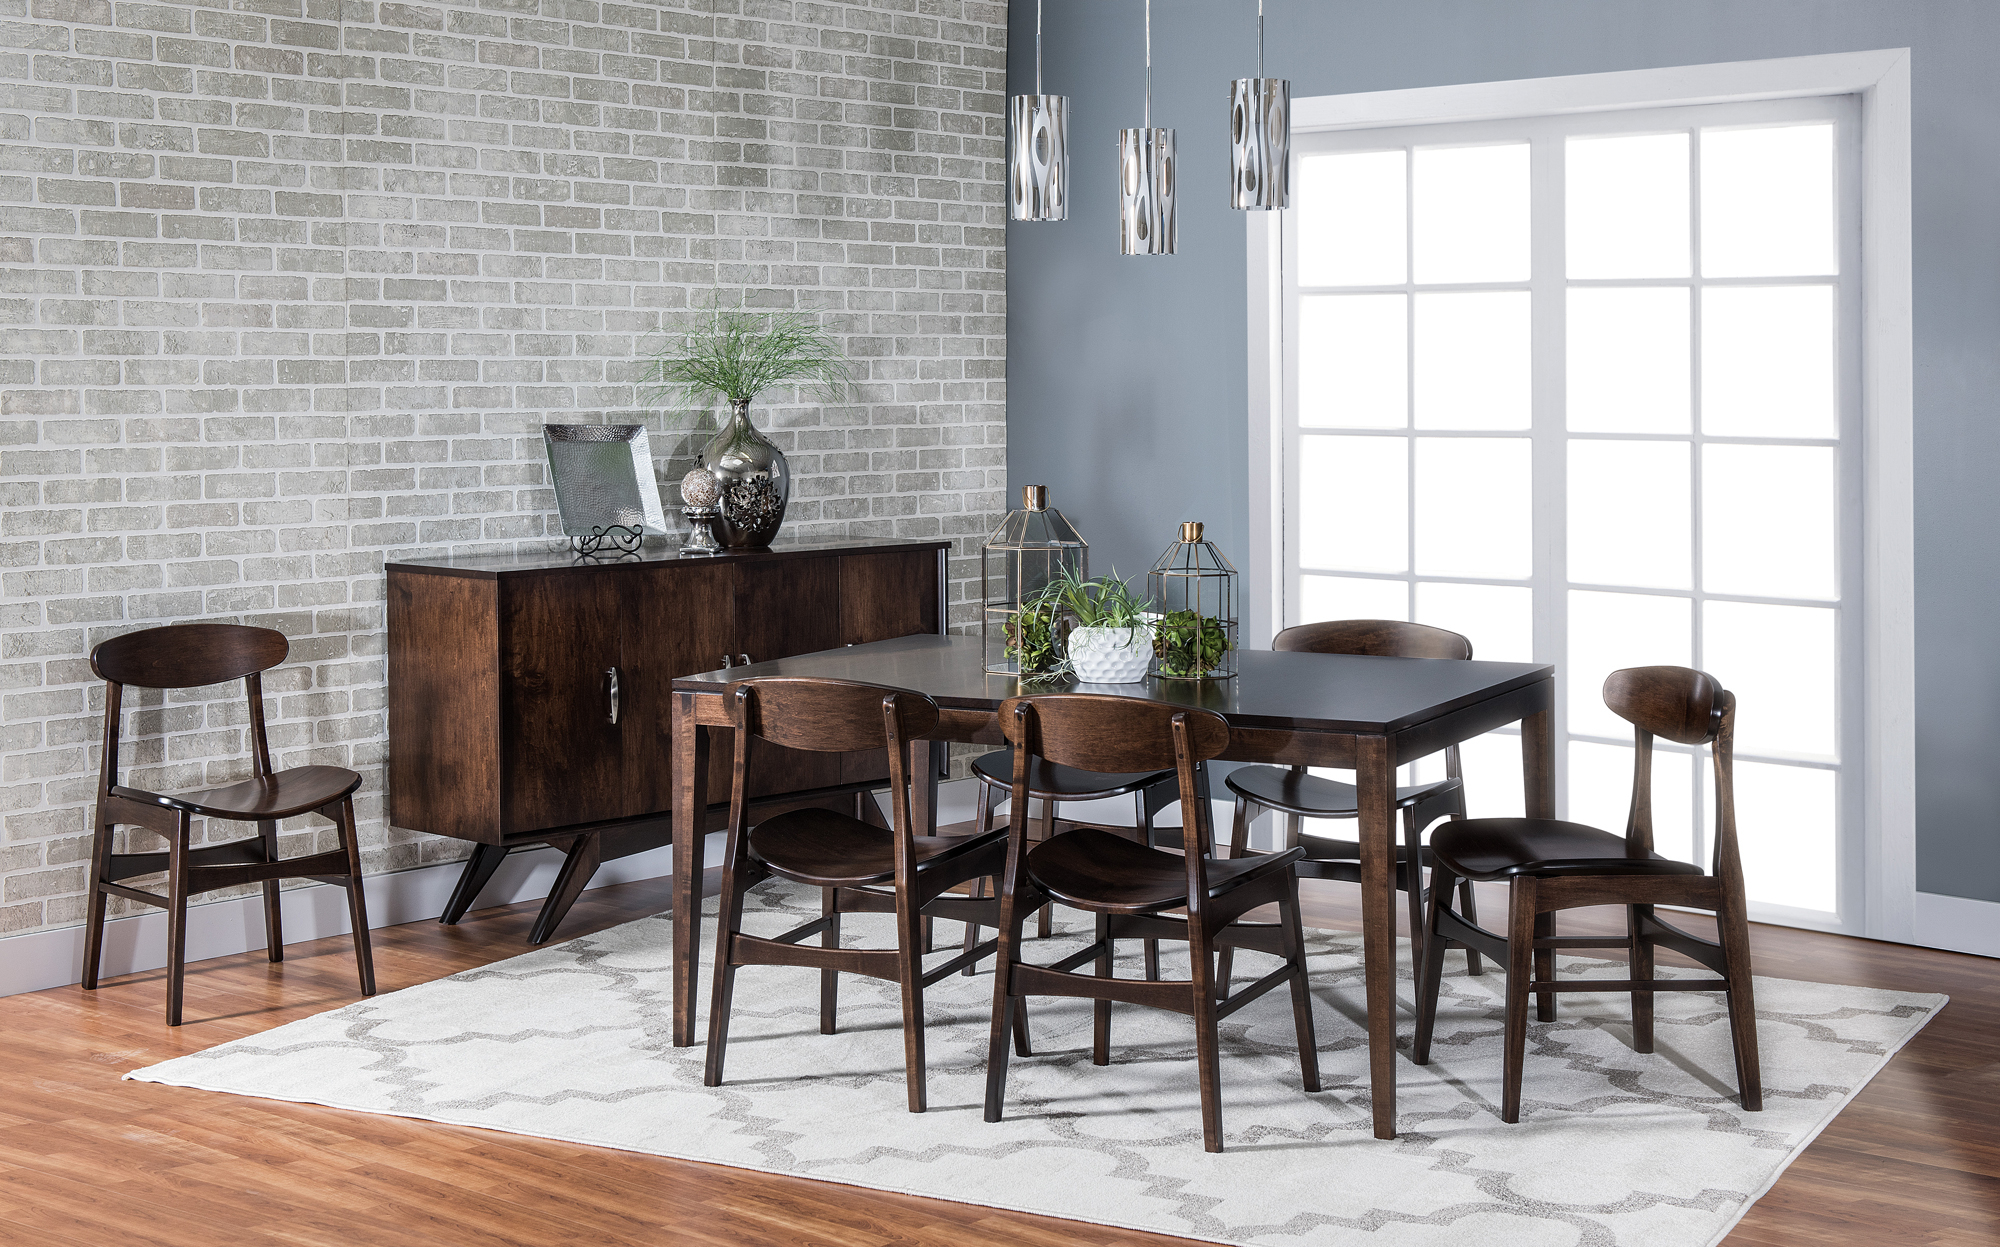 Bedford Hills Dining Table | Amish Dining Table | Weaver Dining Table For Most Recently Released Bedfo 3 Piece Dining Sets (View 11 of 20)